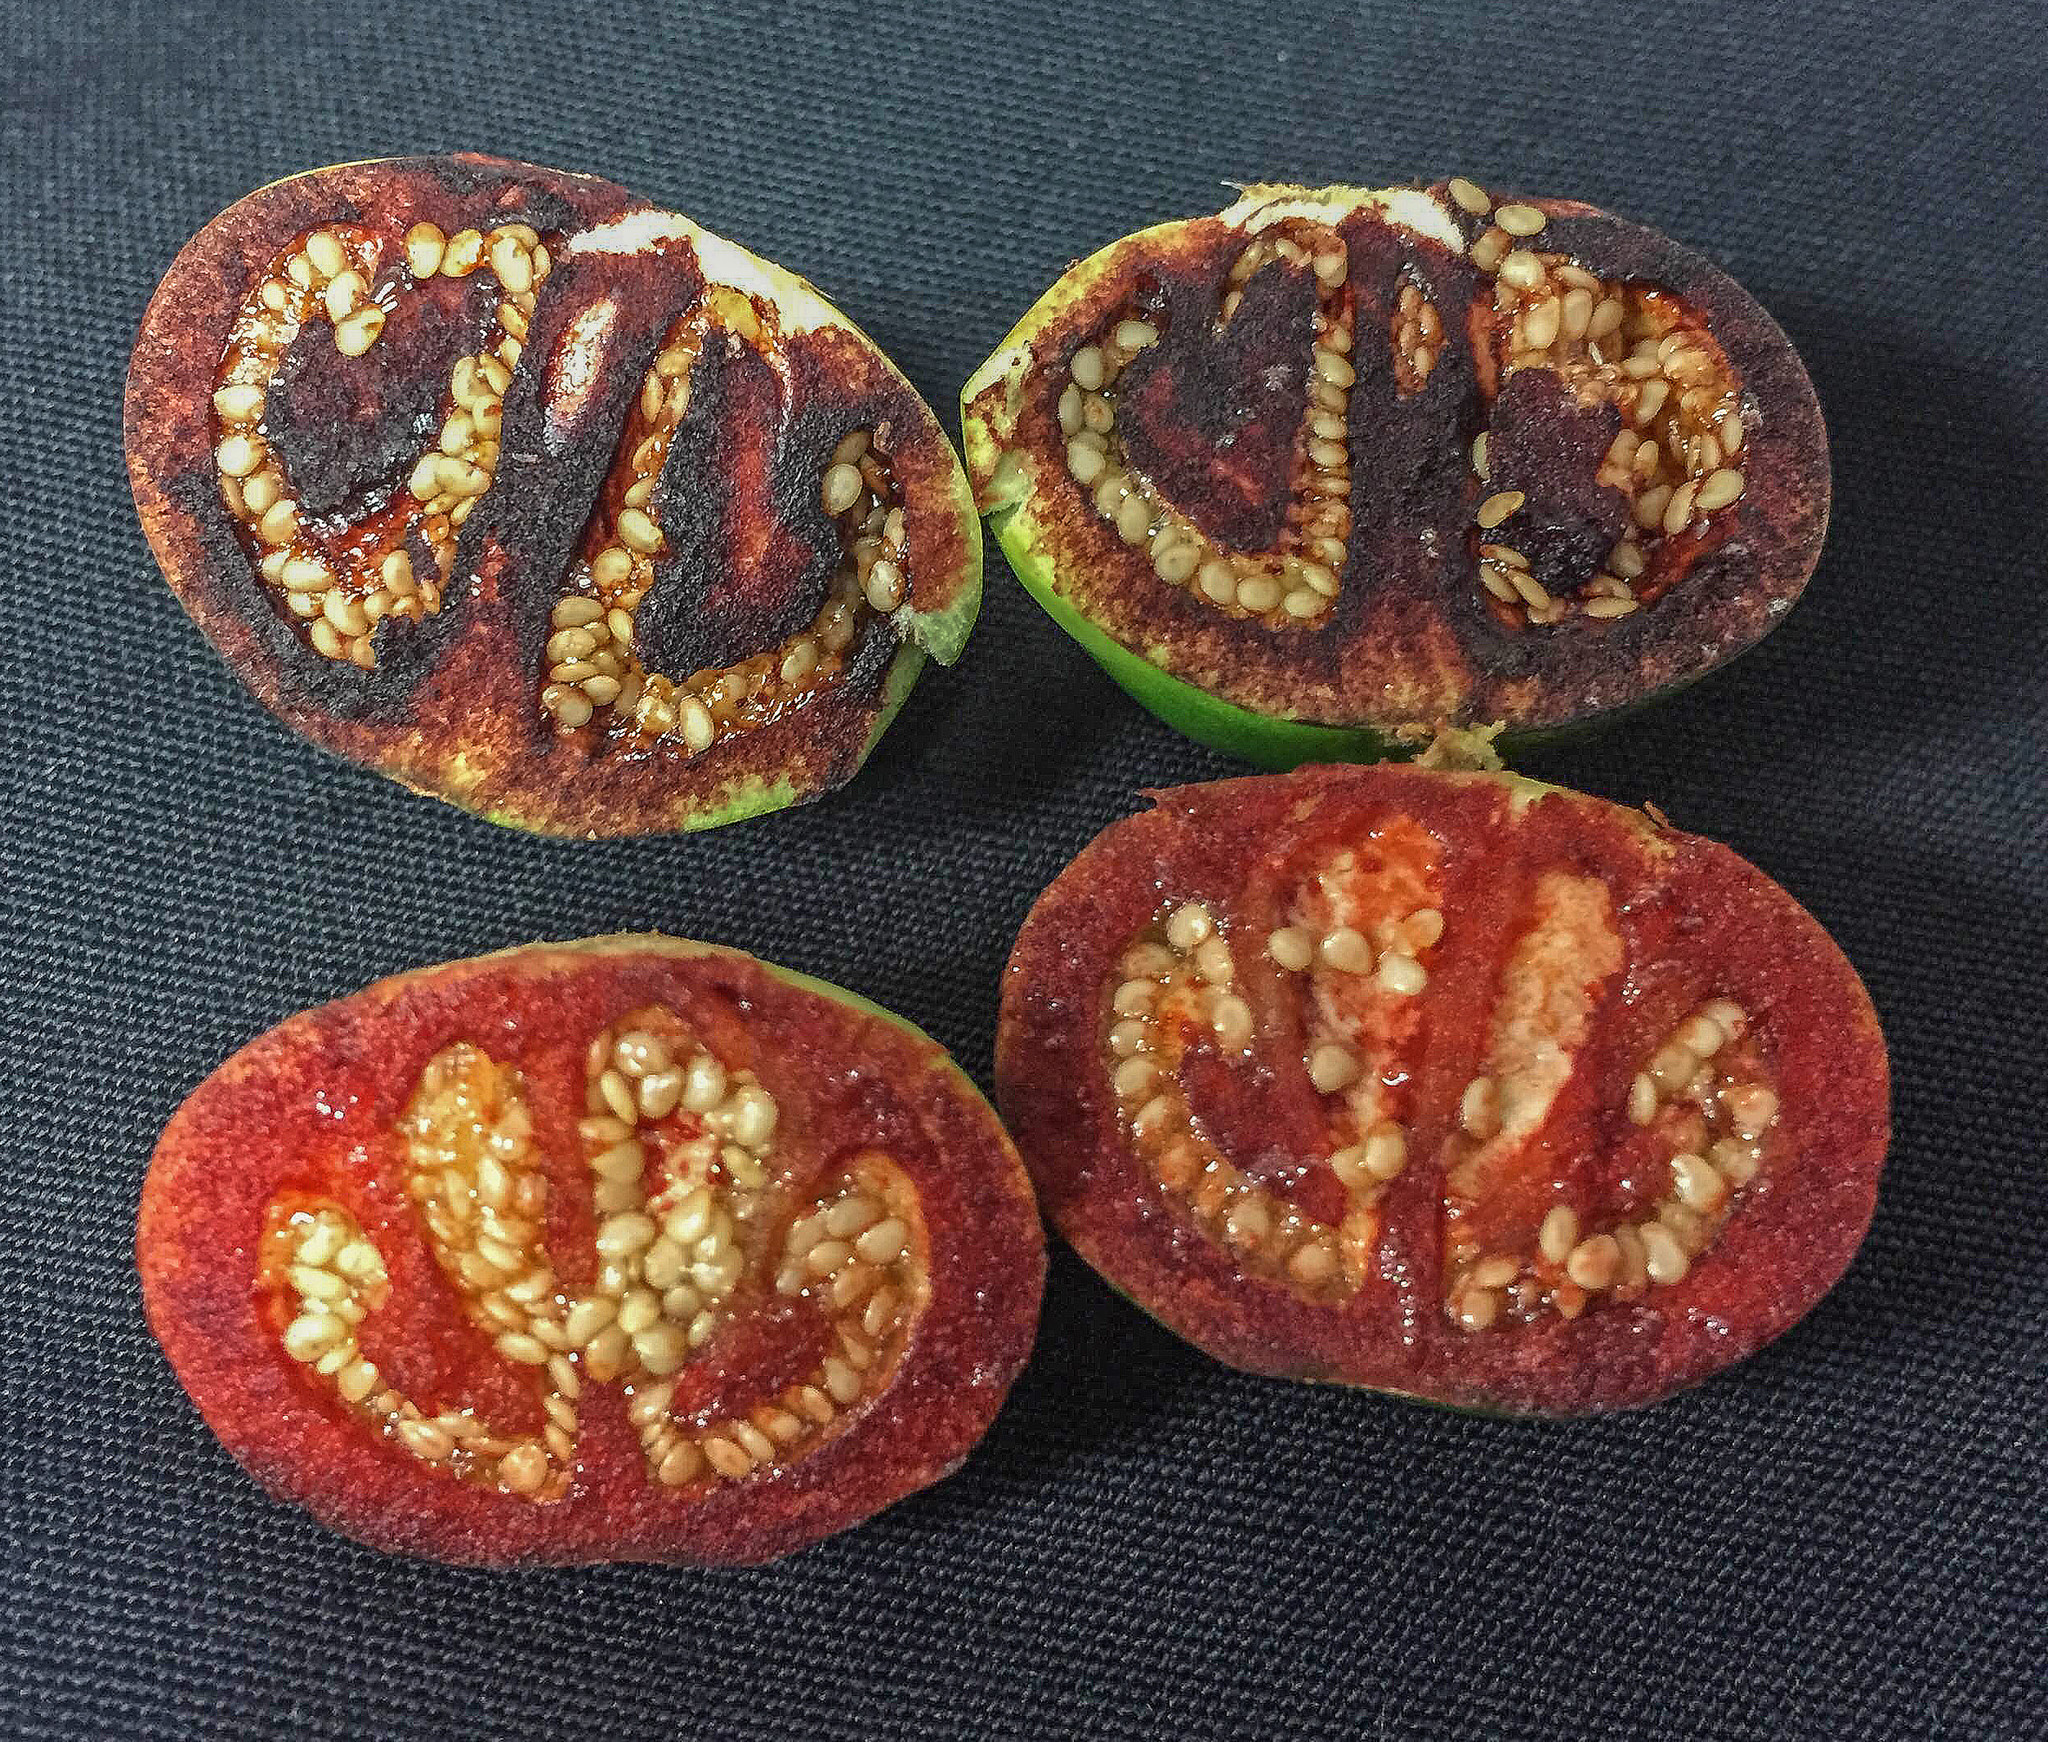 Unripened fruit turns blood red after being cut.